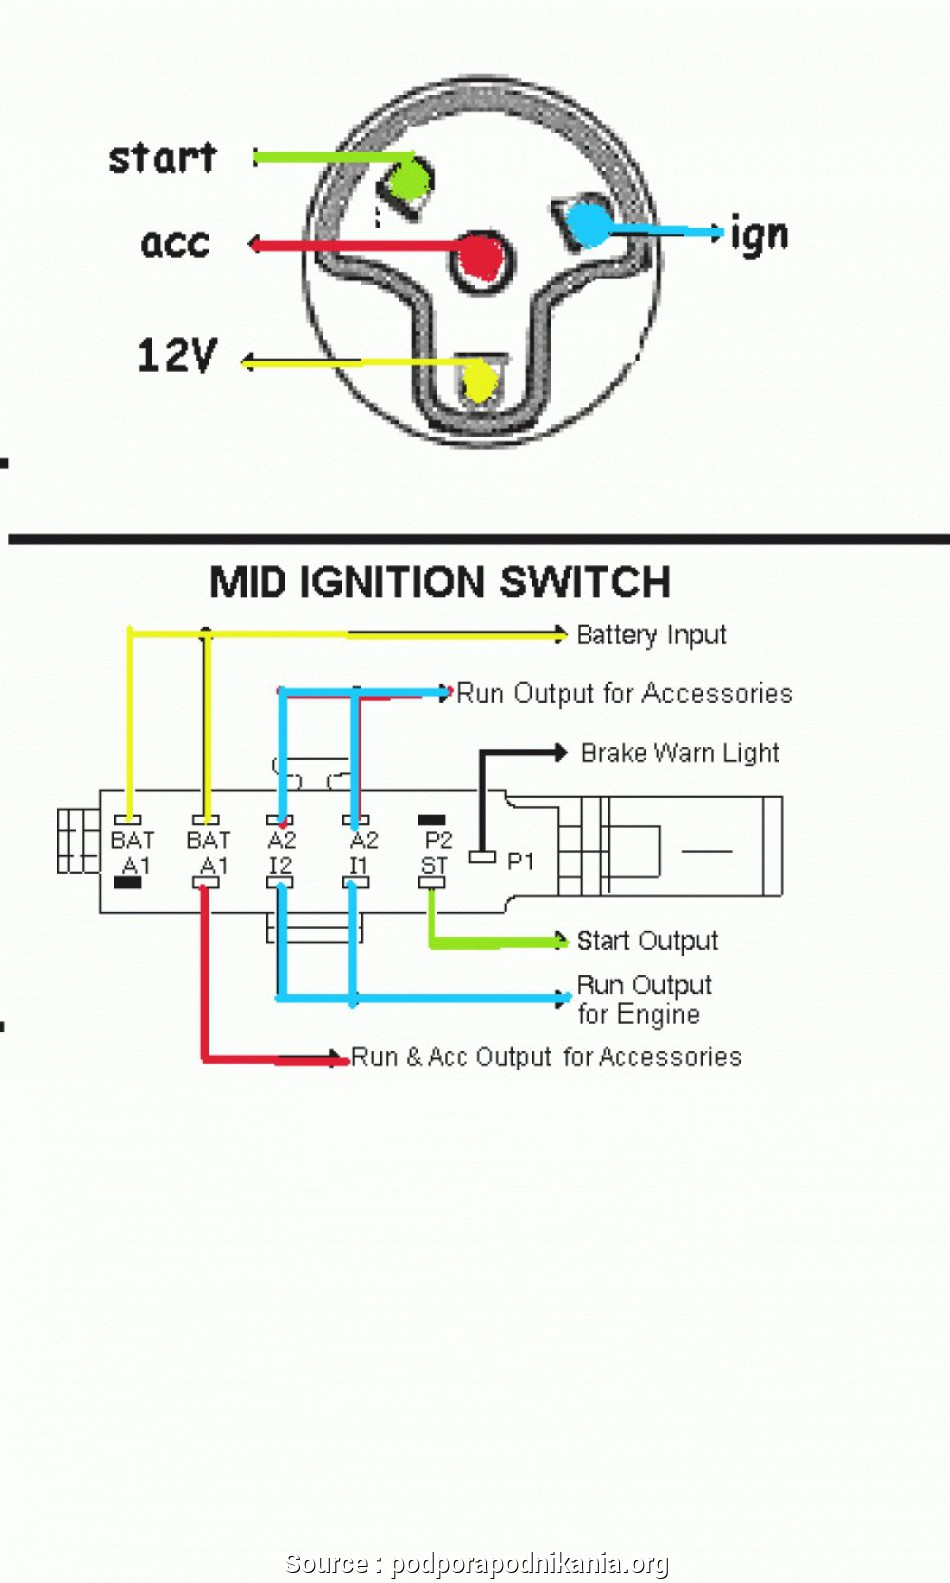 [WQZT_9871]  Ignition Switch Wiring Diagram - Guitar Effects Wiring Diagrams for Wiring  Diagram Schematics | Ignition Switch Schematic |  | Wiring Diagram Schematics